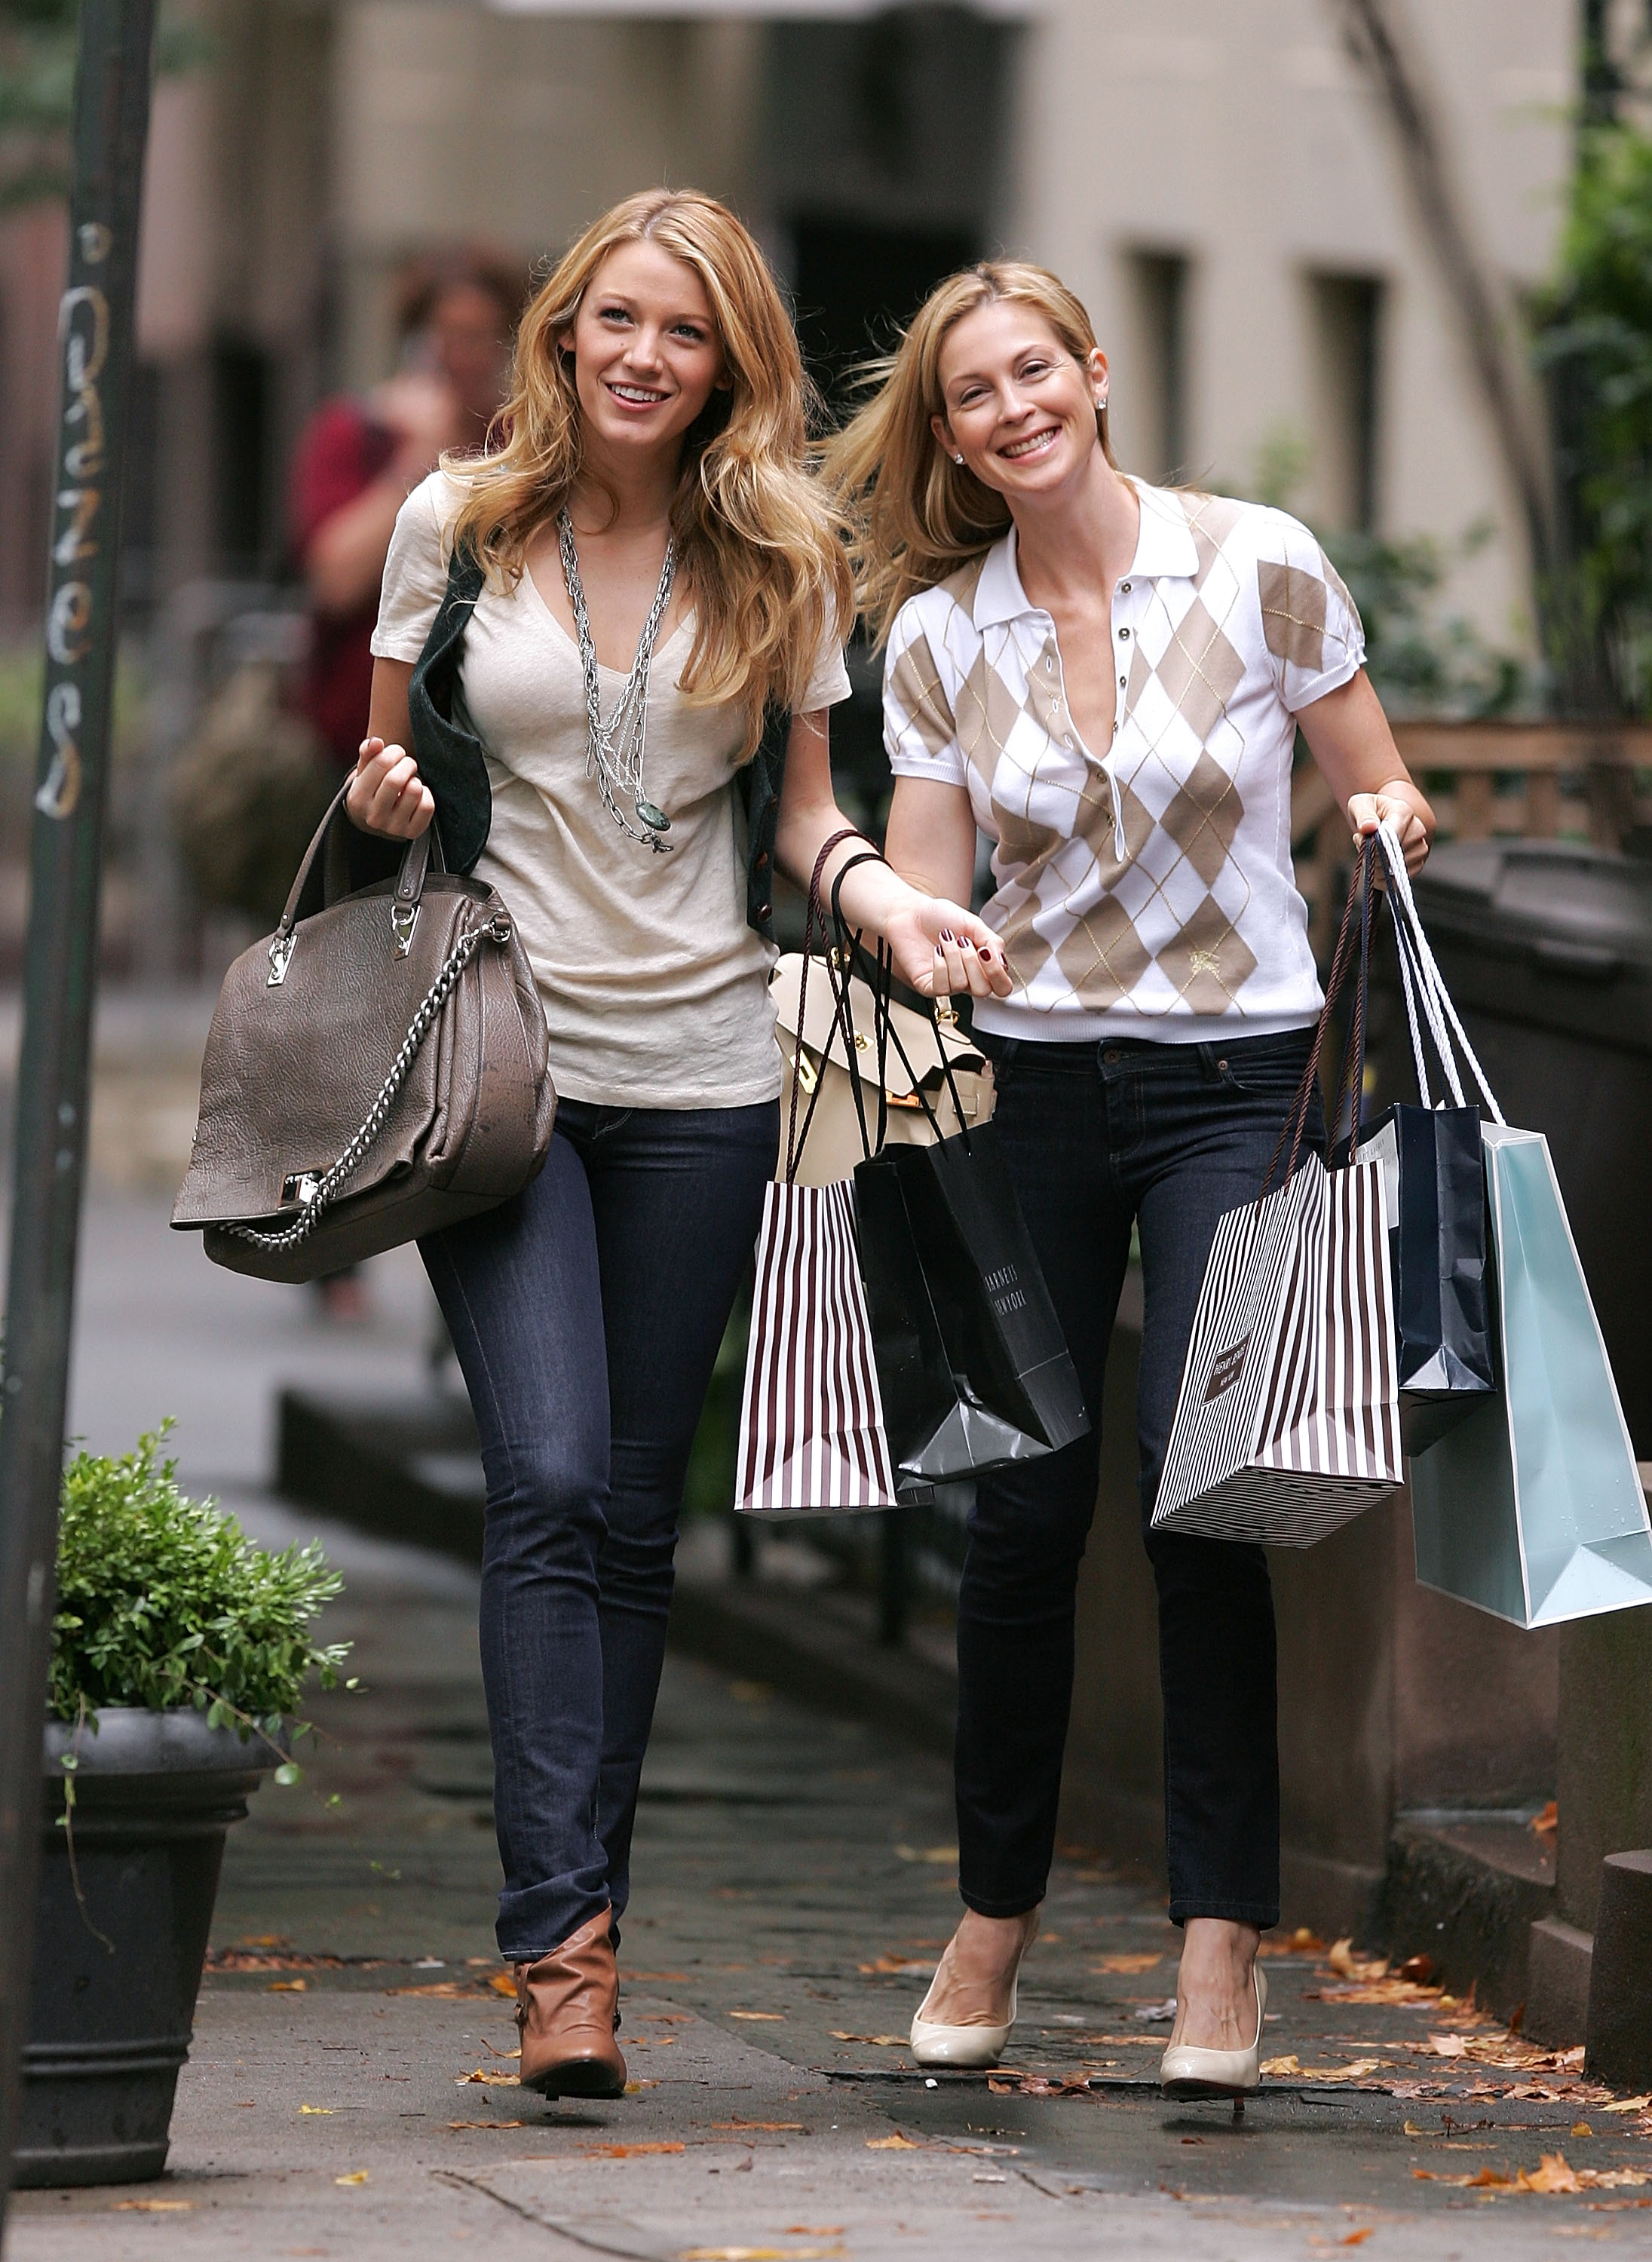 Onscreen family members Serena van der Woodsen and Lily Bass, played by Blake Lively and Kelly Rutherford, took a very fashionable stroll through Manhattan in August 2008.